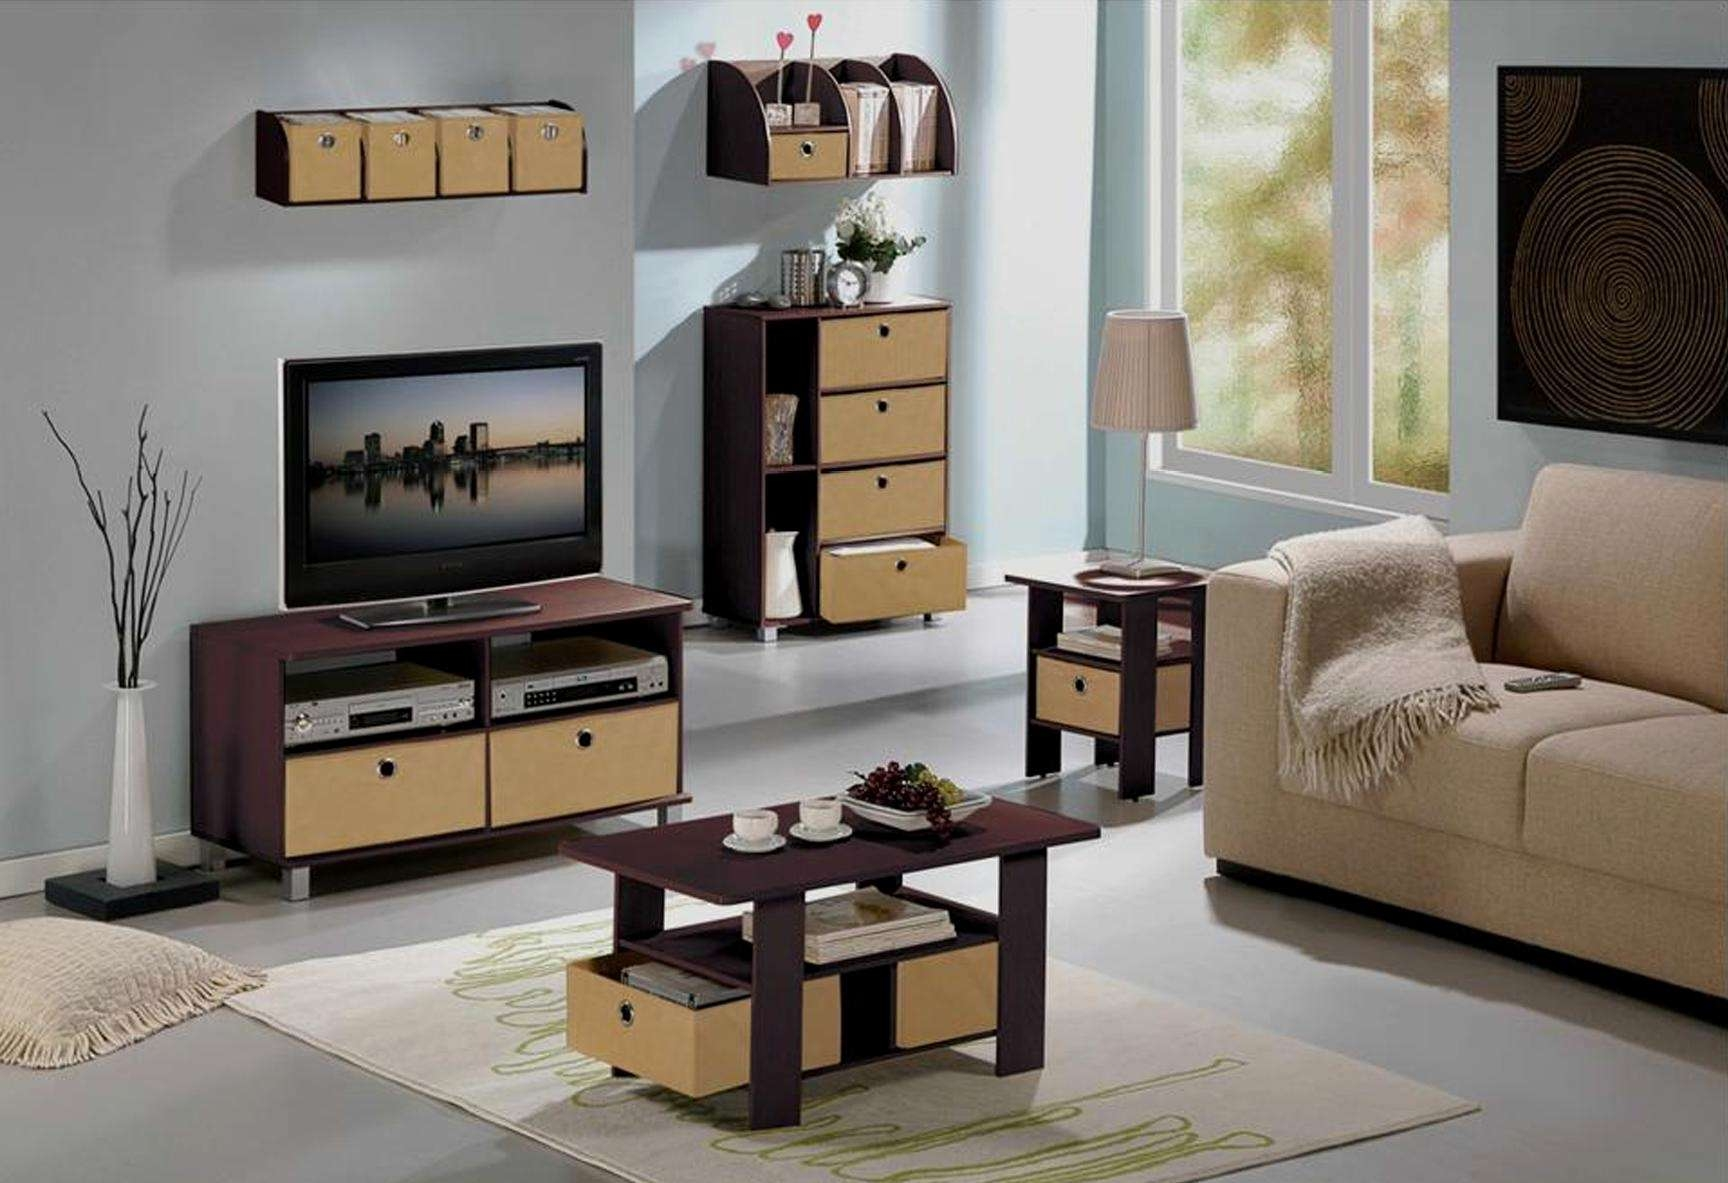 35 Best Of Coffee Table And Tv Stand Set – Home Furniture Ideas Intended For Best And Newest Tv Stand Coffee Table Sets (View 15 of 20)